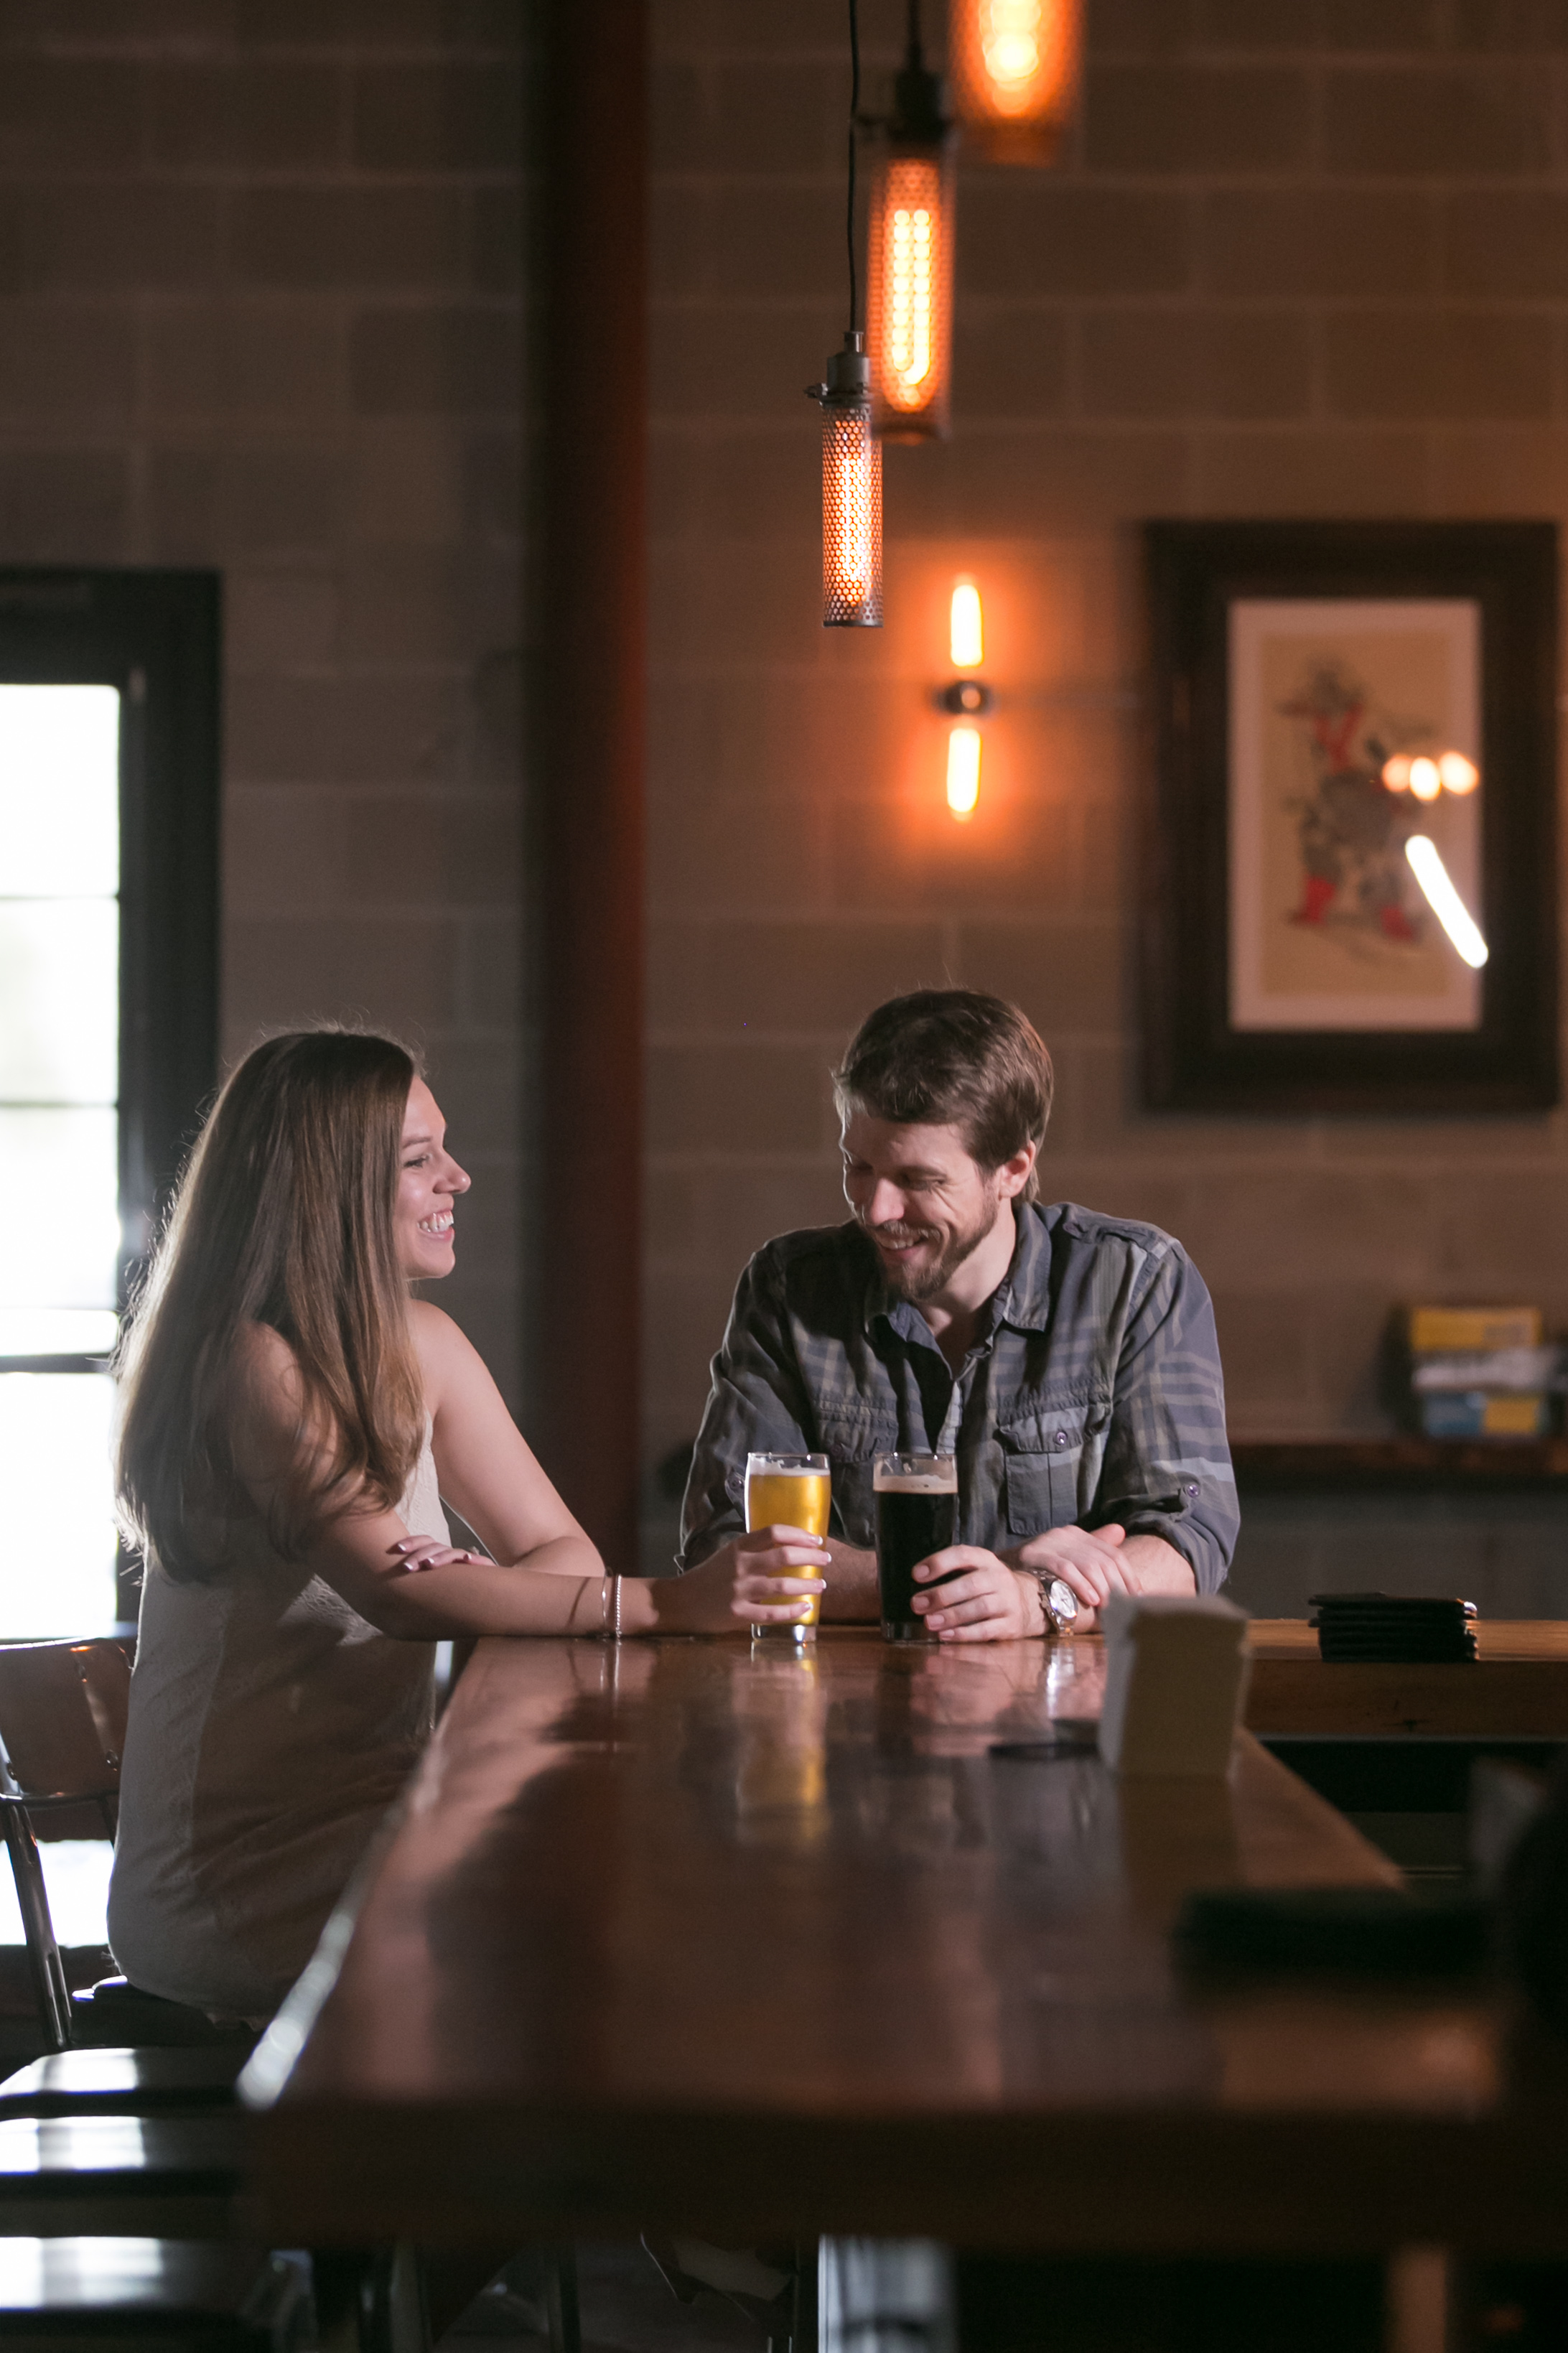 6_10_16 Lauren and Zach Coppertail Brewing Co Engagement Session 0058.jpg